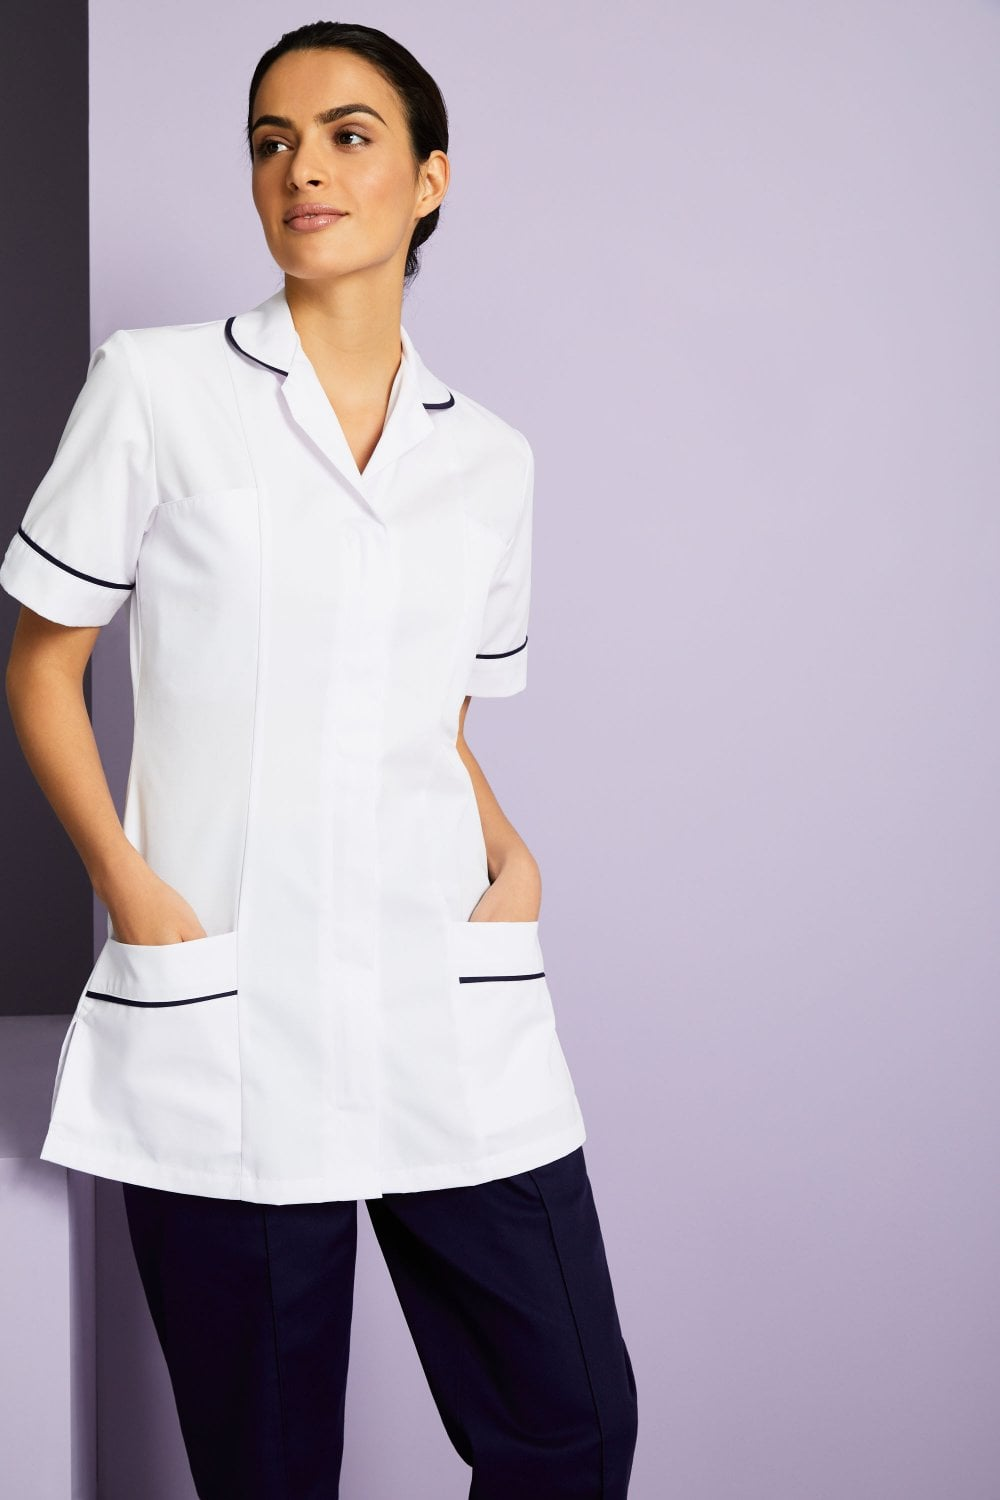 Women 39 s white healthcare tunic with various trim colours for White spa uniform uk